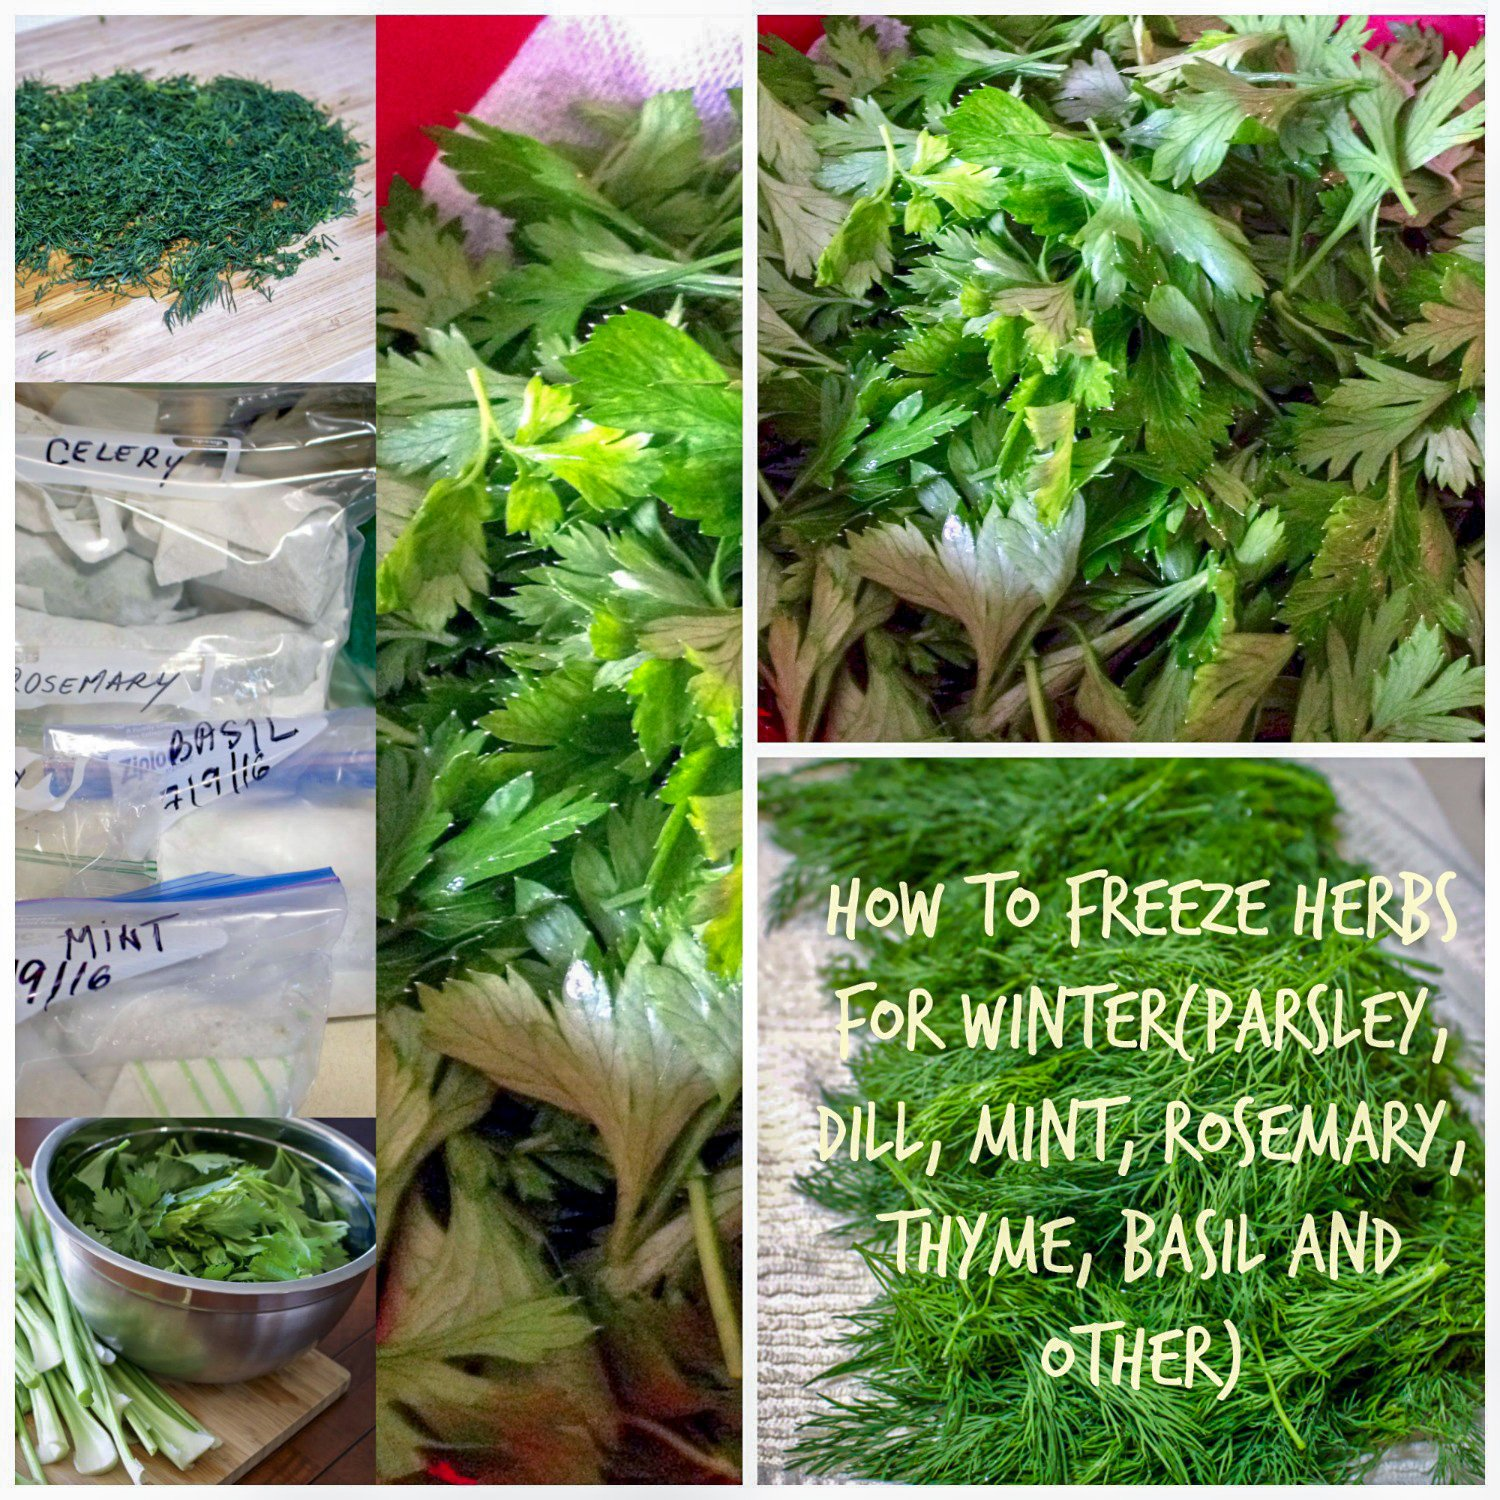 How to freeze herbs for winter- an easy tutorial to help you preserve some of your favorite herbs for the cold season.